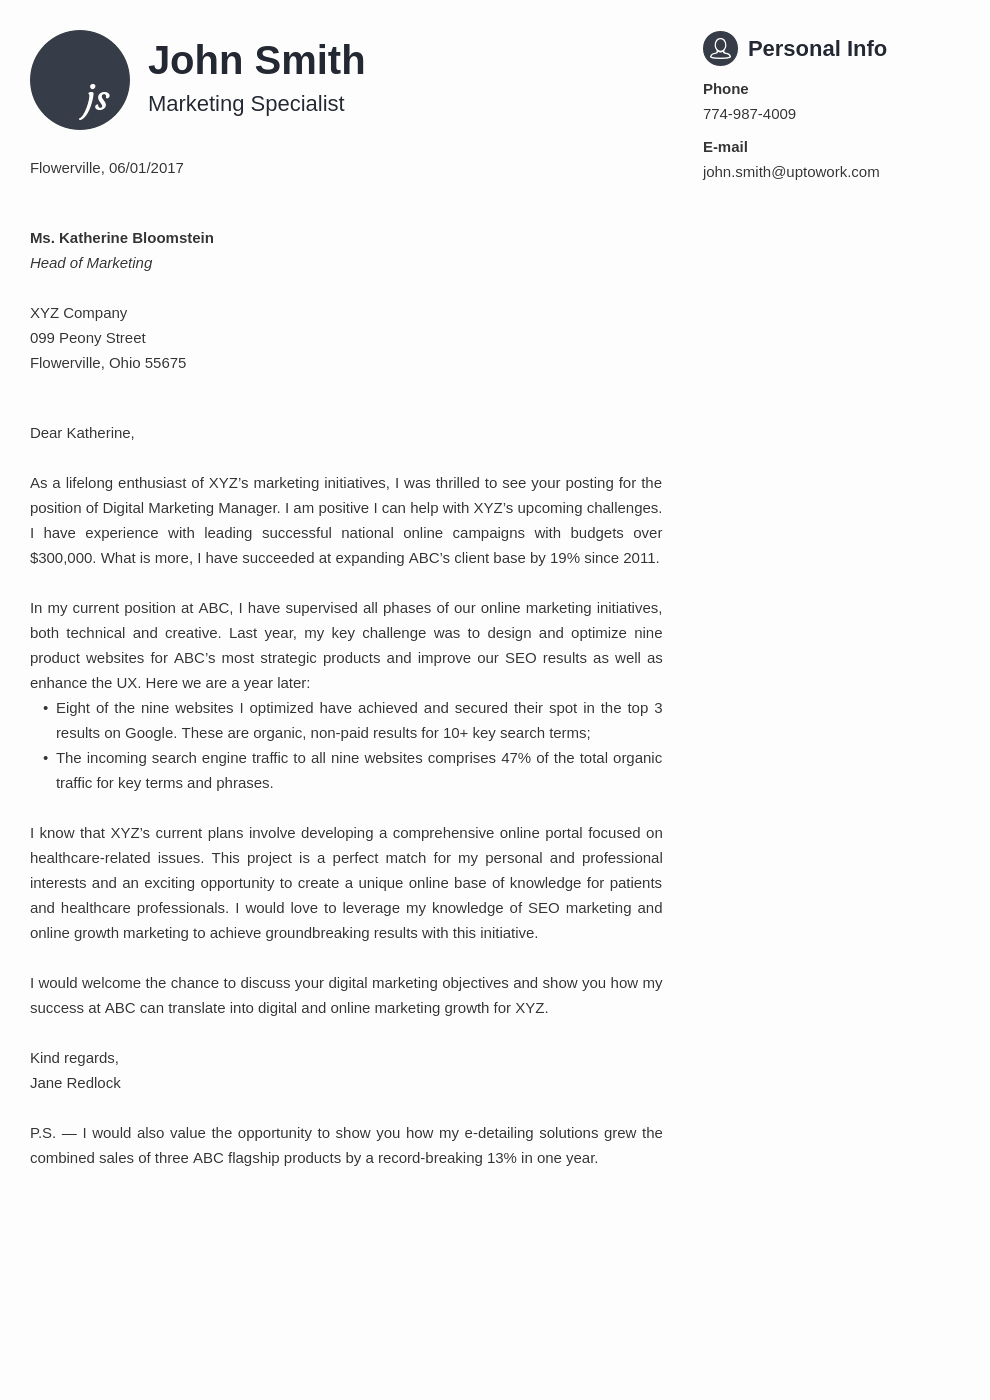 Professional Cover Letters for Resumes Fresh 20 Cover Letter Templates Fill them In and Download In 5